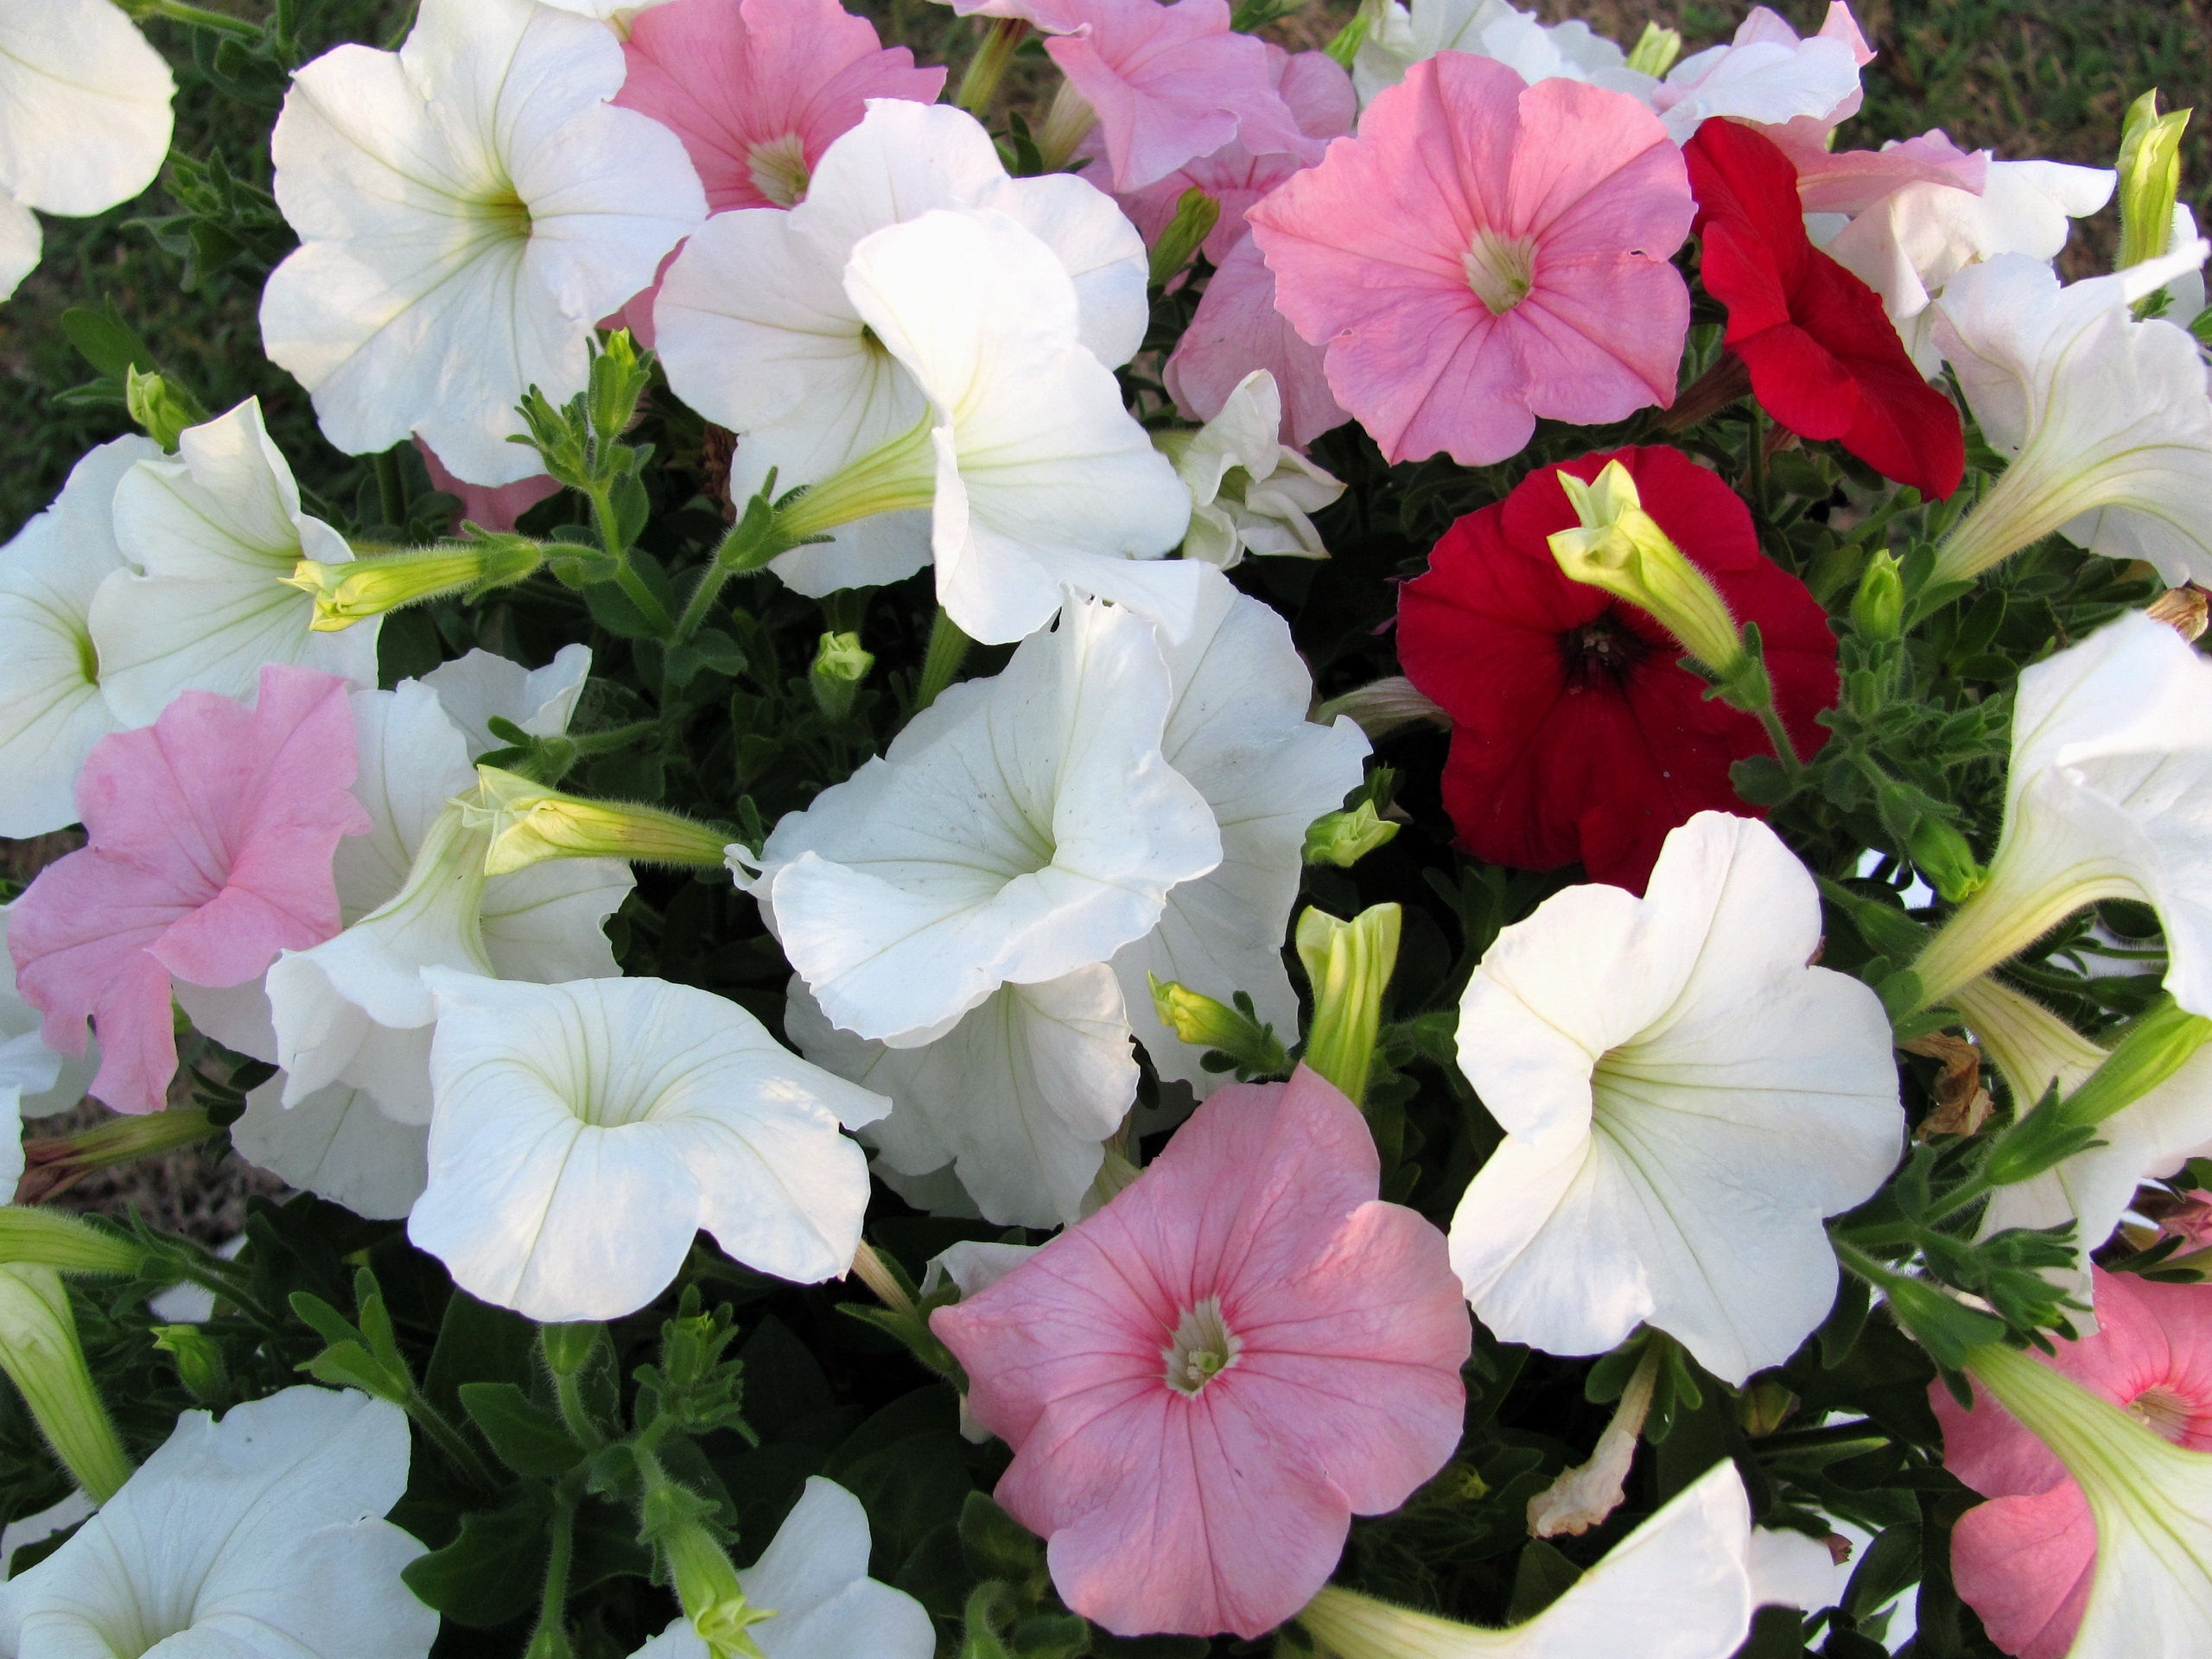 11 Petunia Hd Wallpapers Backgrounds Wallpaper Abyss